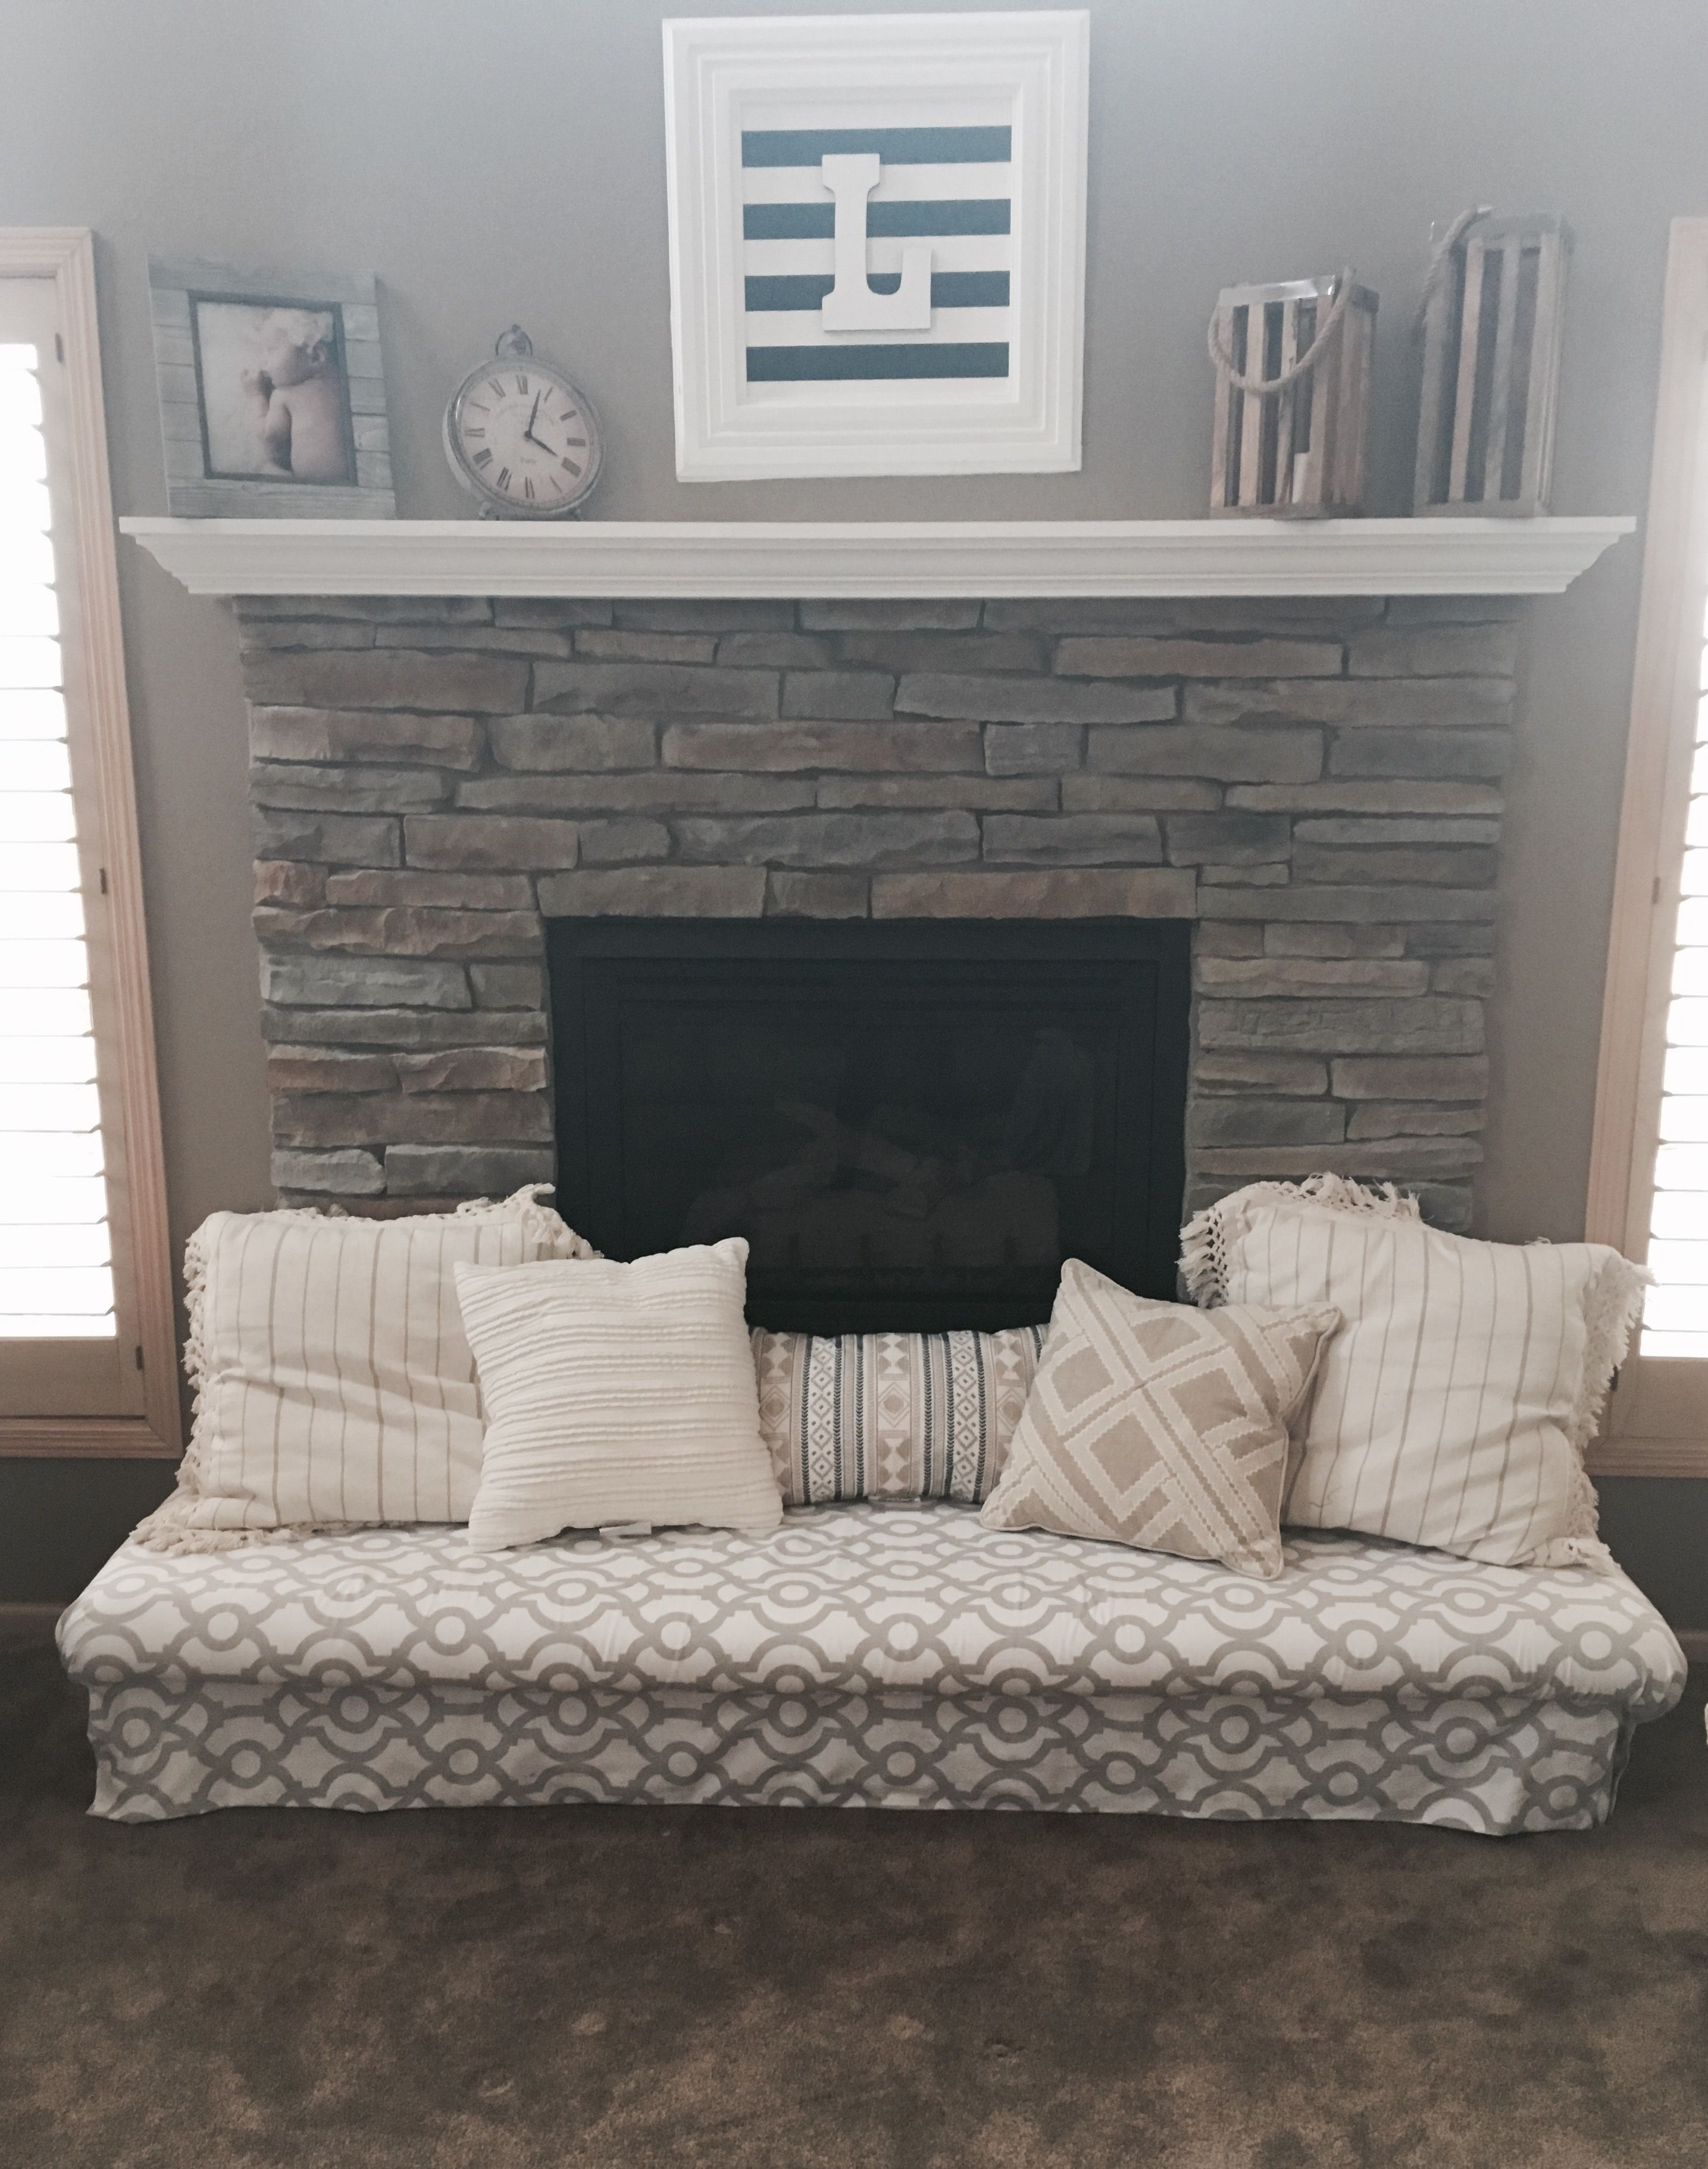 Fireplace Safety Screen Child Guard Baby Proof The Fireplace Hearth With A Padded Bench Angie S Diy